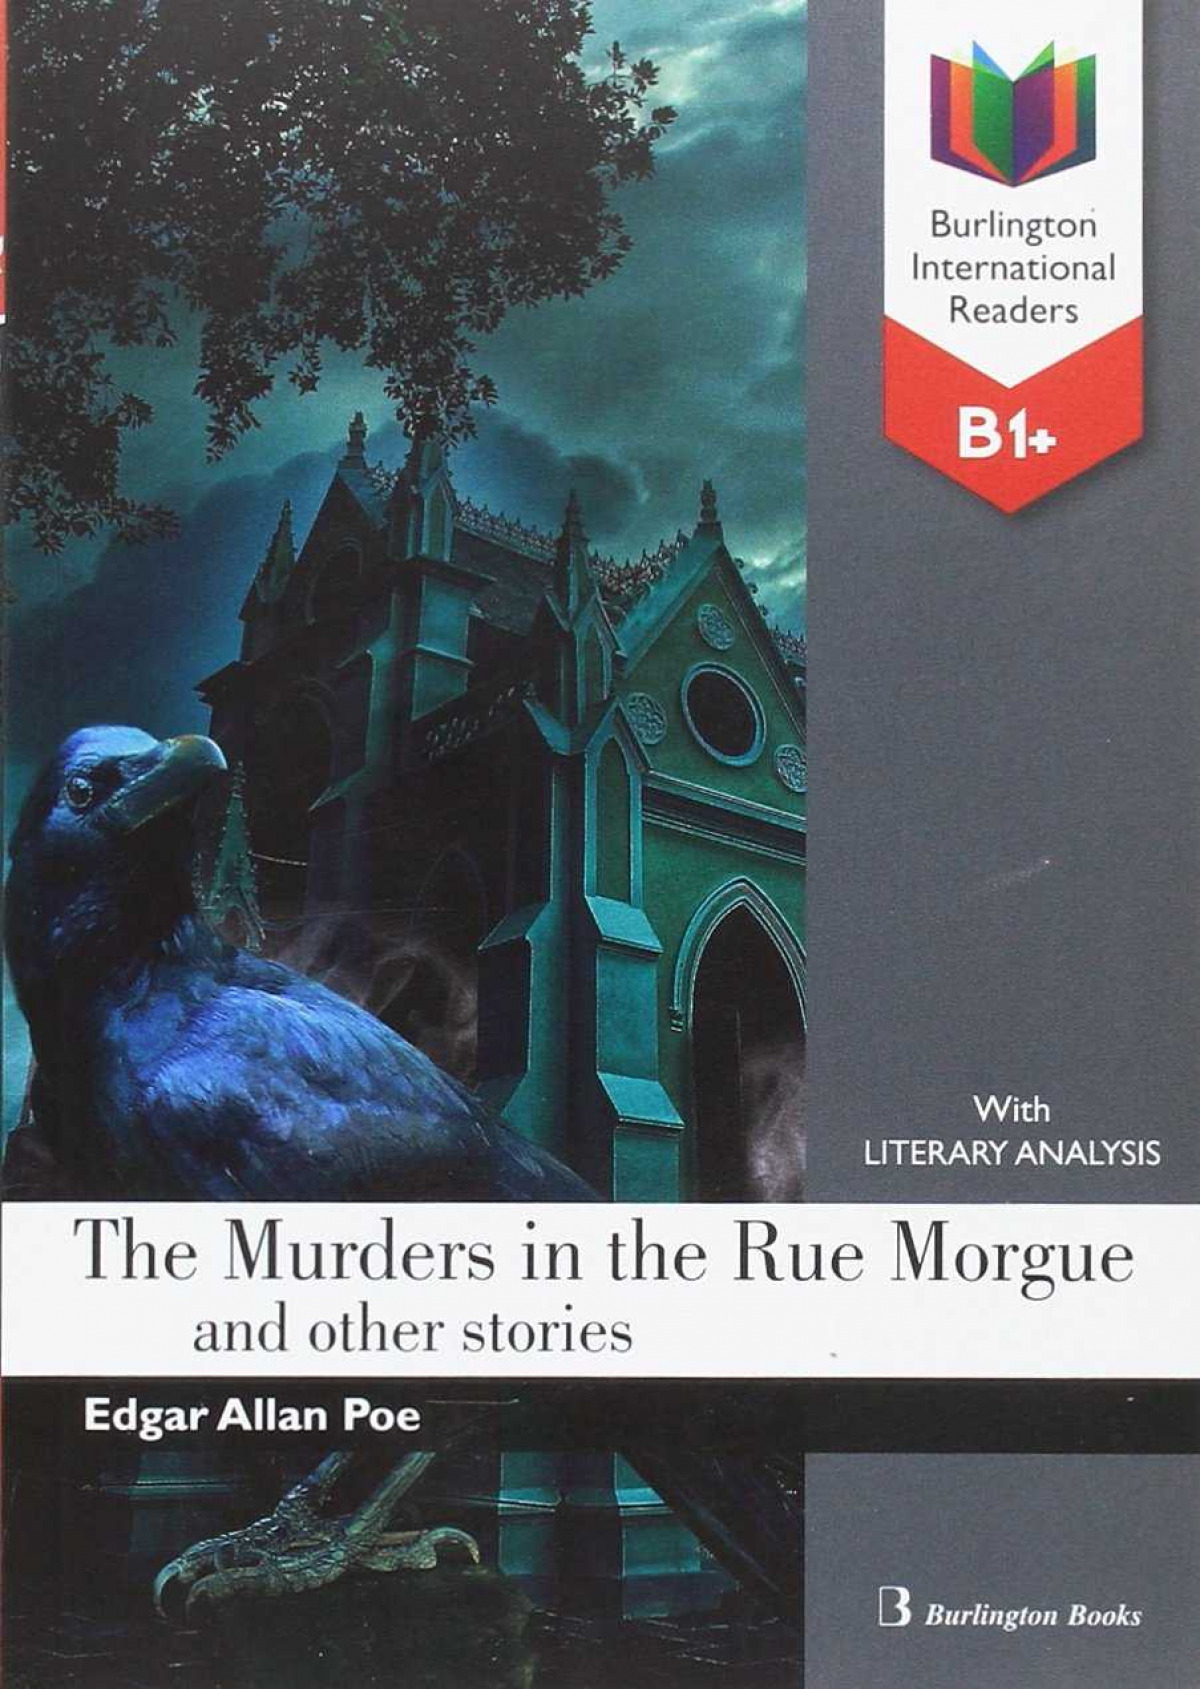 murders in the rue morgue b1+ reader 9789963516094